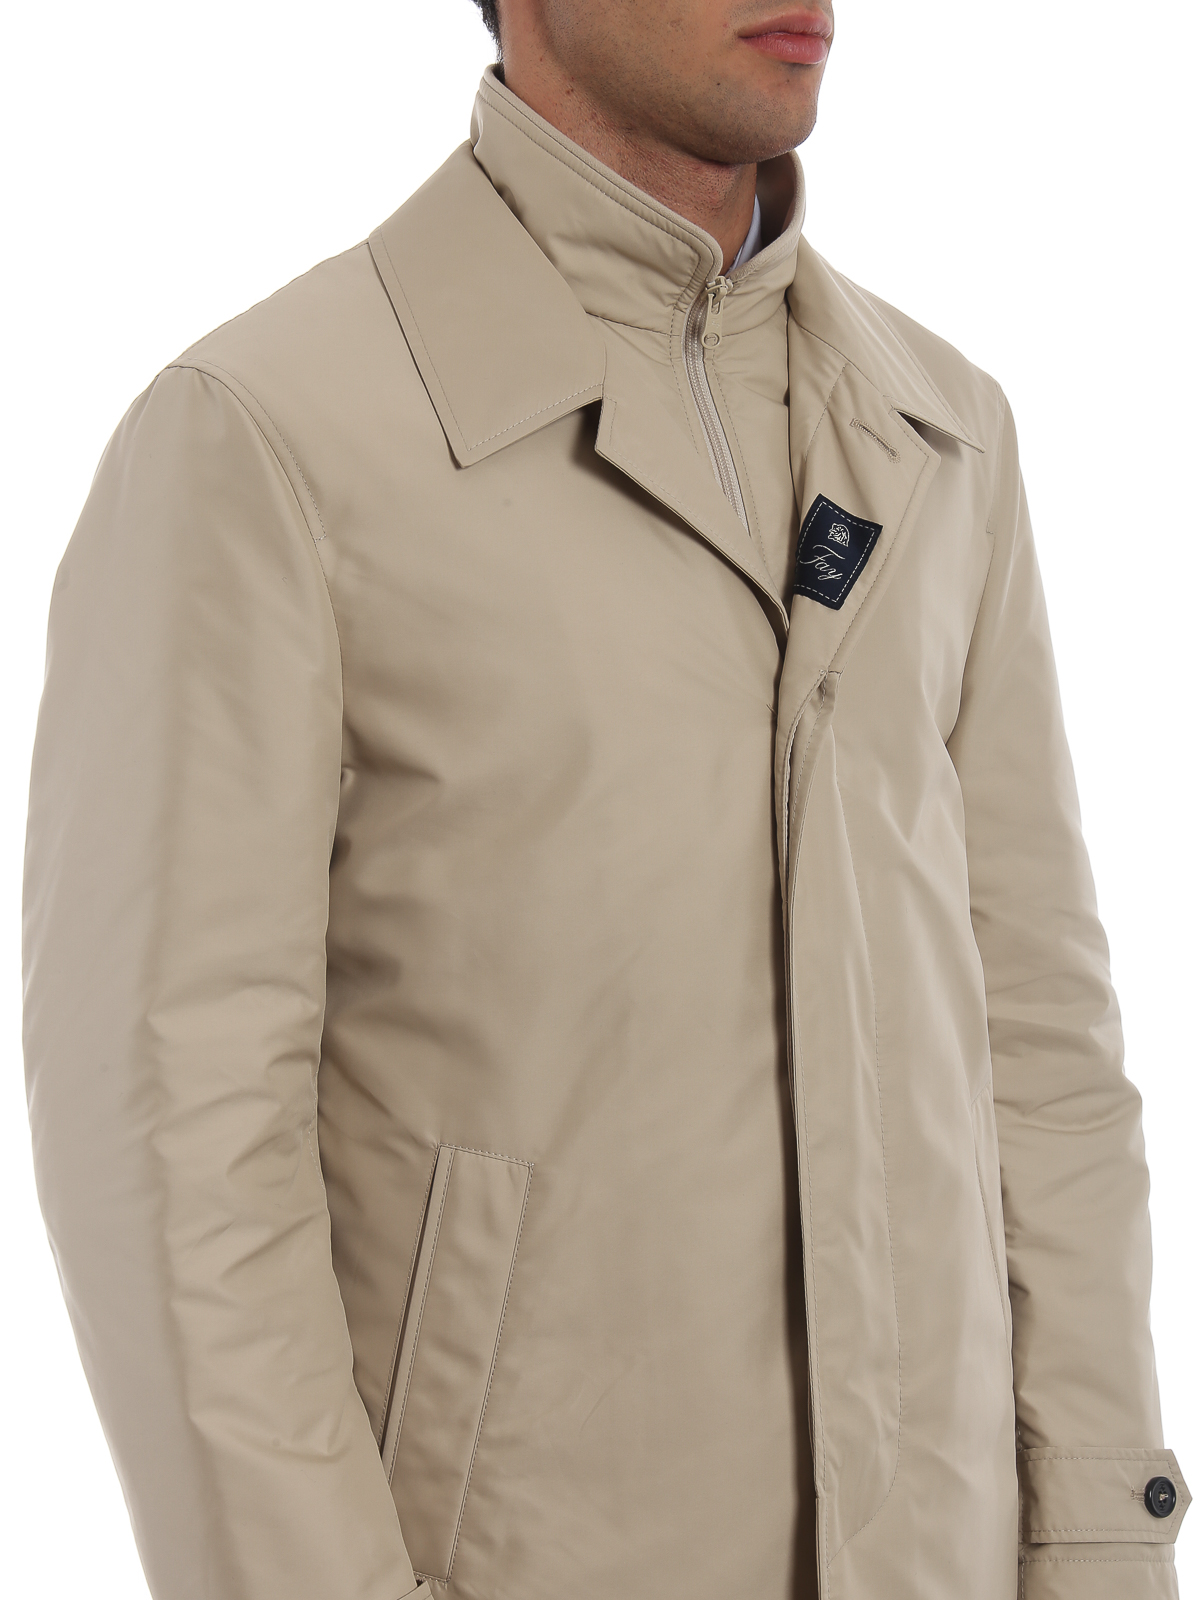 new products a7c59 f6241 Fay - Trench imbottito Morning beige - cappotti trench ...